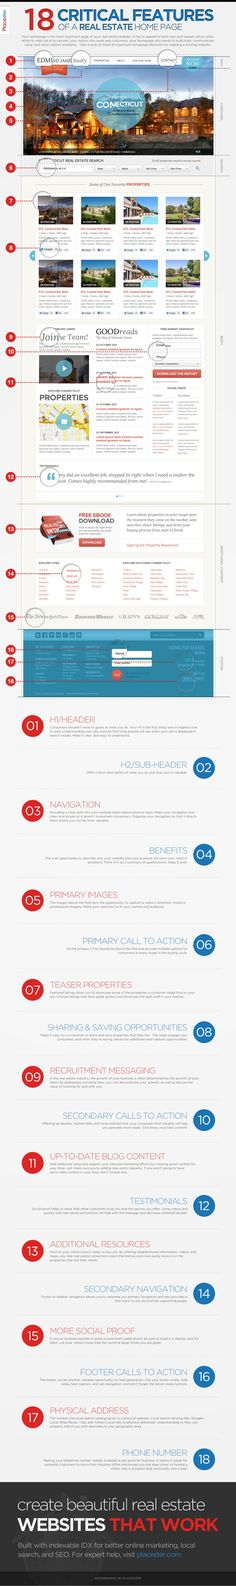 infographic-anatomy-of-a-real-estate-marketing-website by Placester via Slideshare